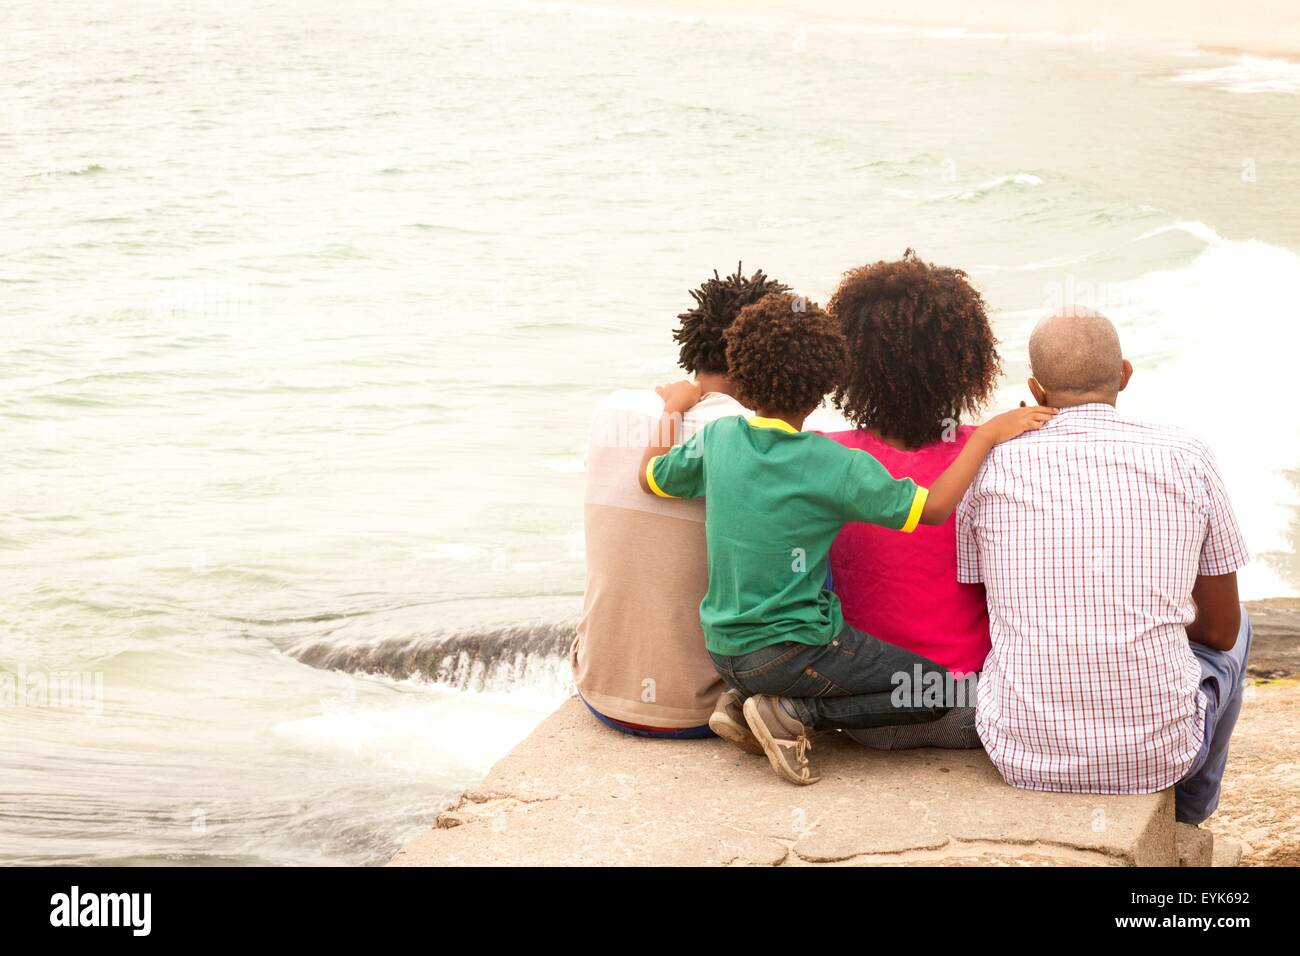 Rear view of mature man and family looking out to sea on Ipanema Beach, Rio De Janeiro, Brazil - Stock Image